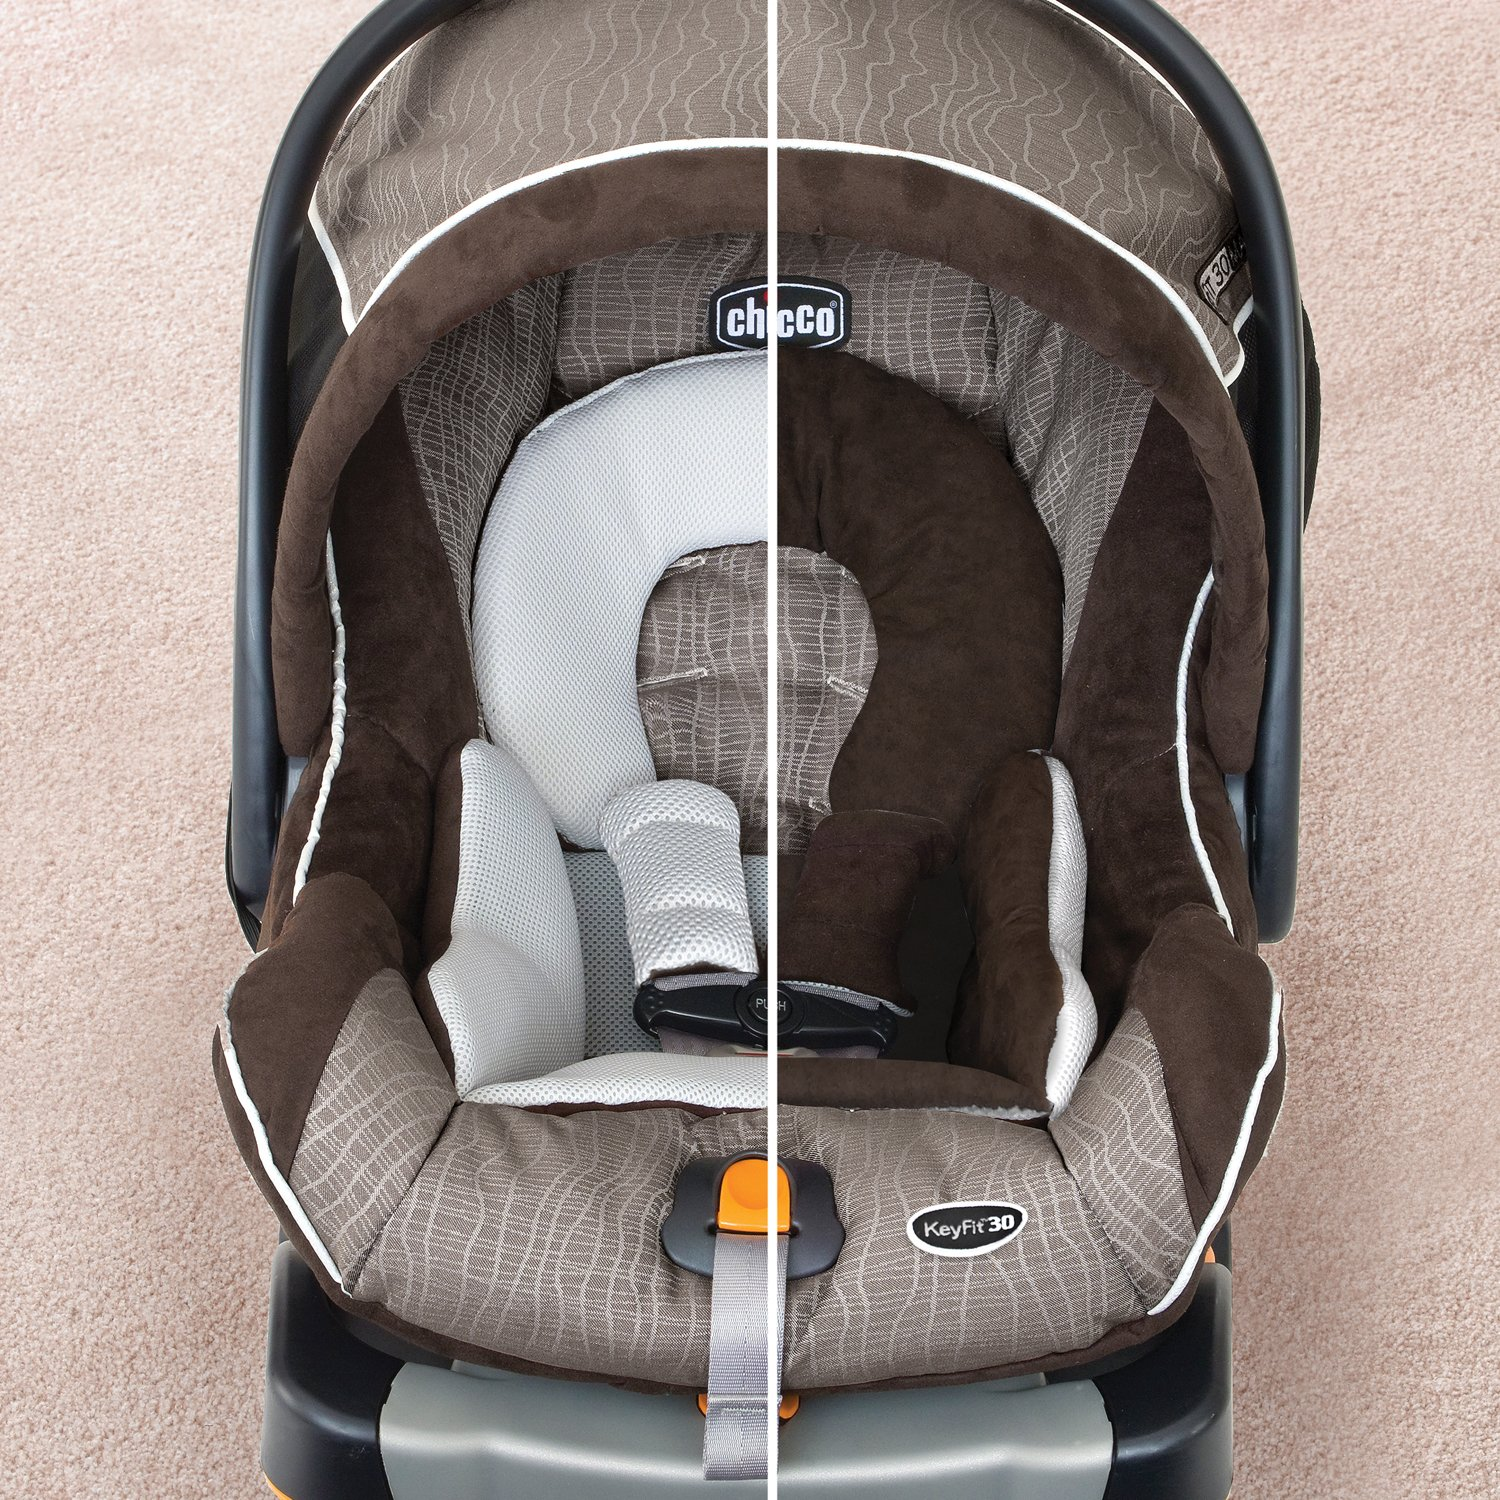 Openbox Chicco Keyfit 30 Magic Infant Car Seat Black Grey